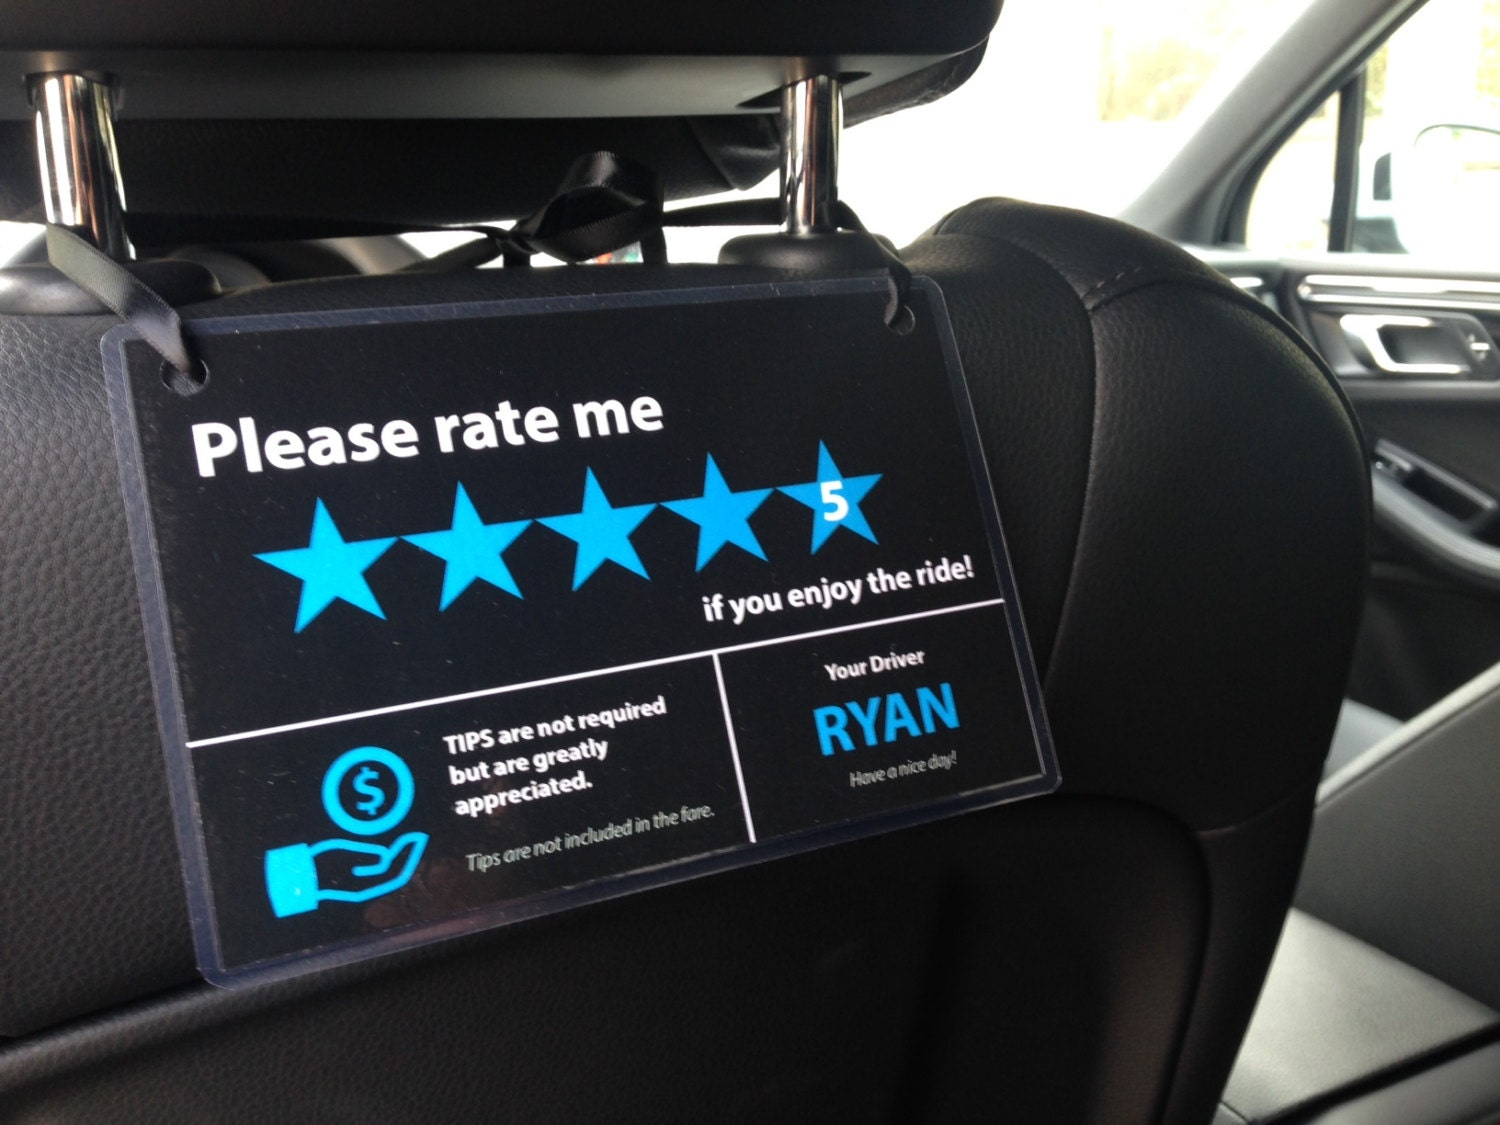 It's just an image of Mesmerizing Uber Lyft Sign Printable